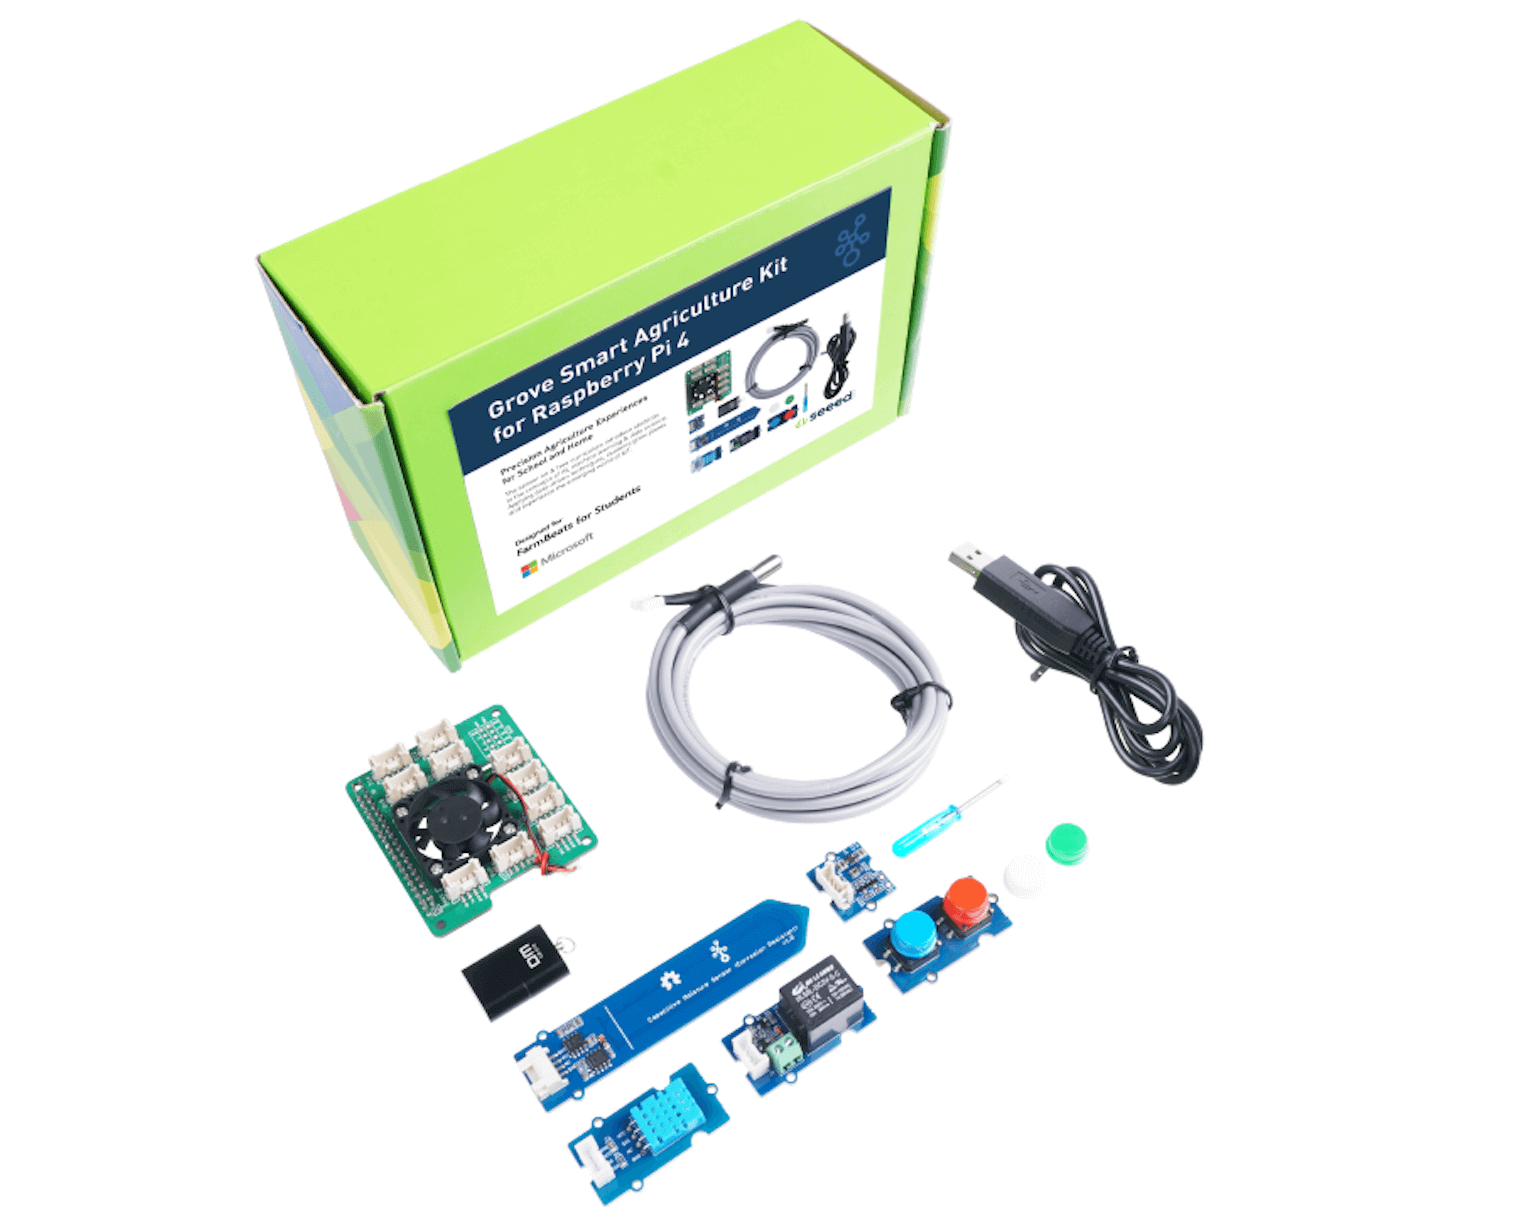 Microsoft FarmBeats for Students Kit, Smart Agriculture Experience for School & Home